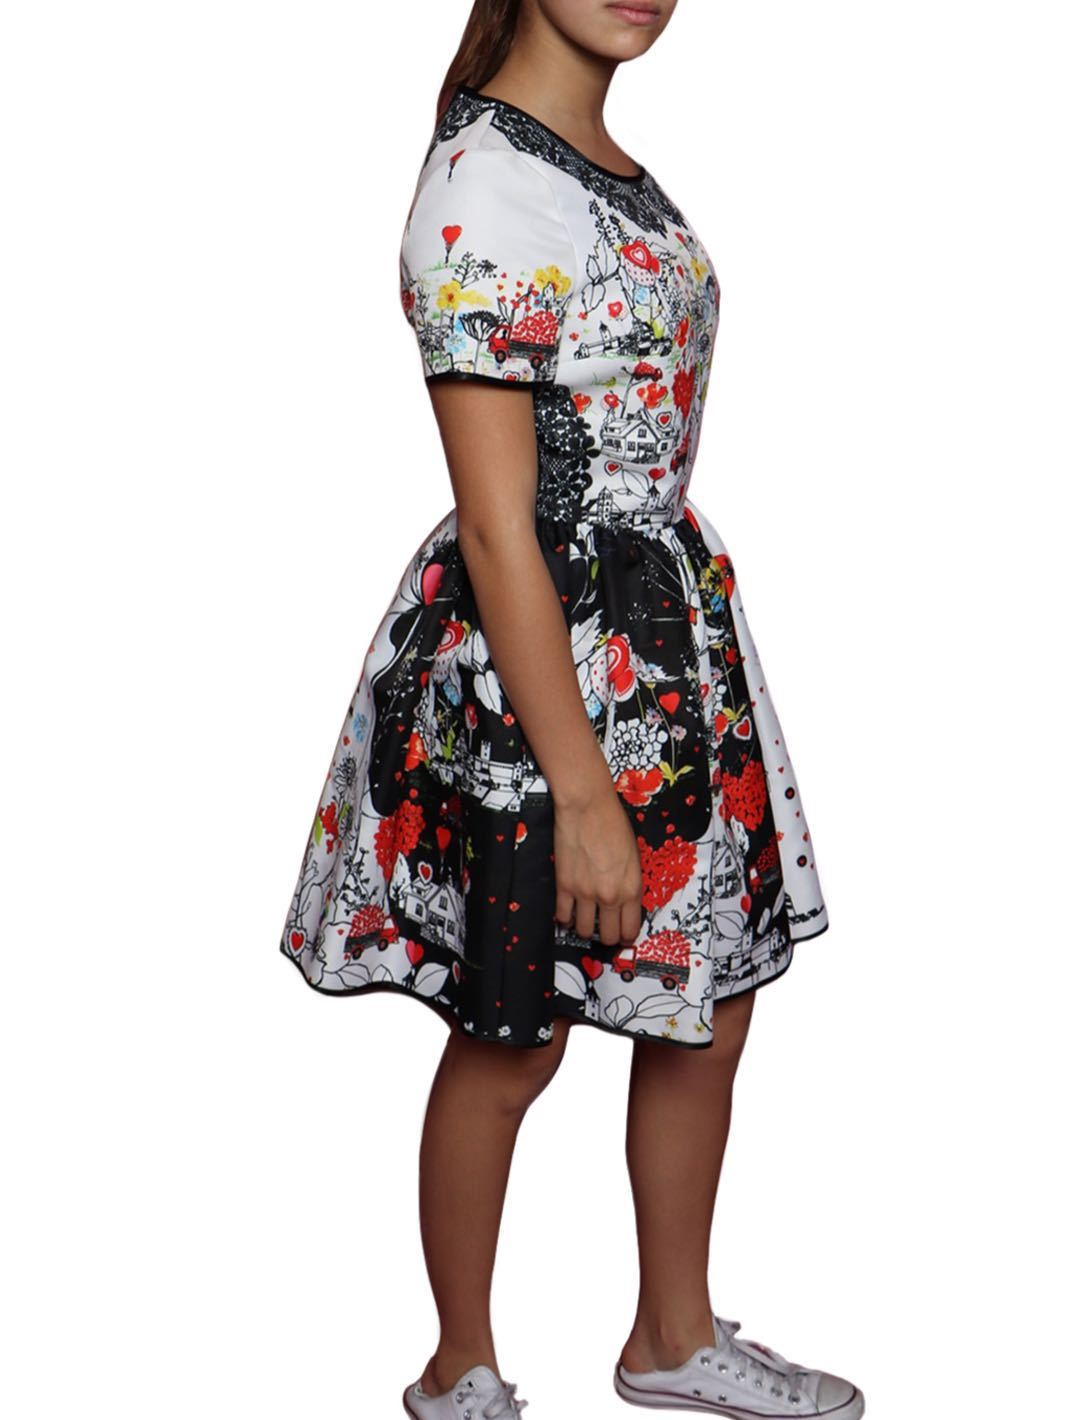 Floral Print Techno Mikado Dress - The Bobby Boga